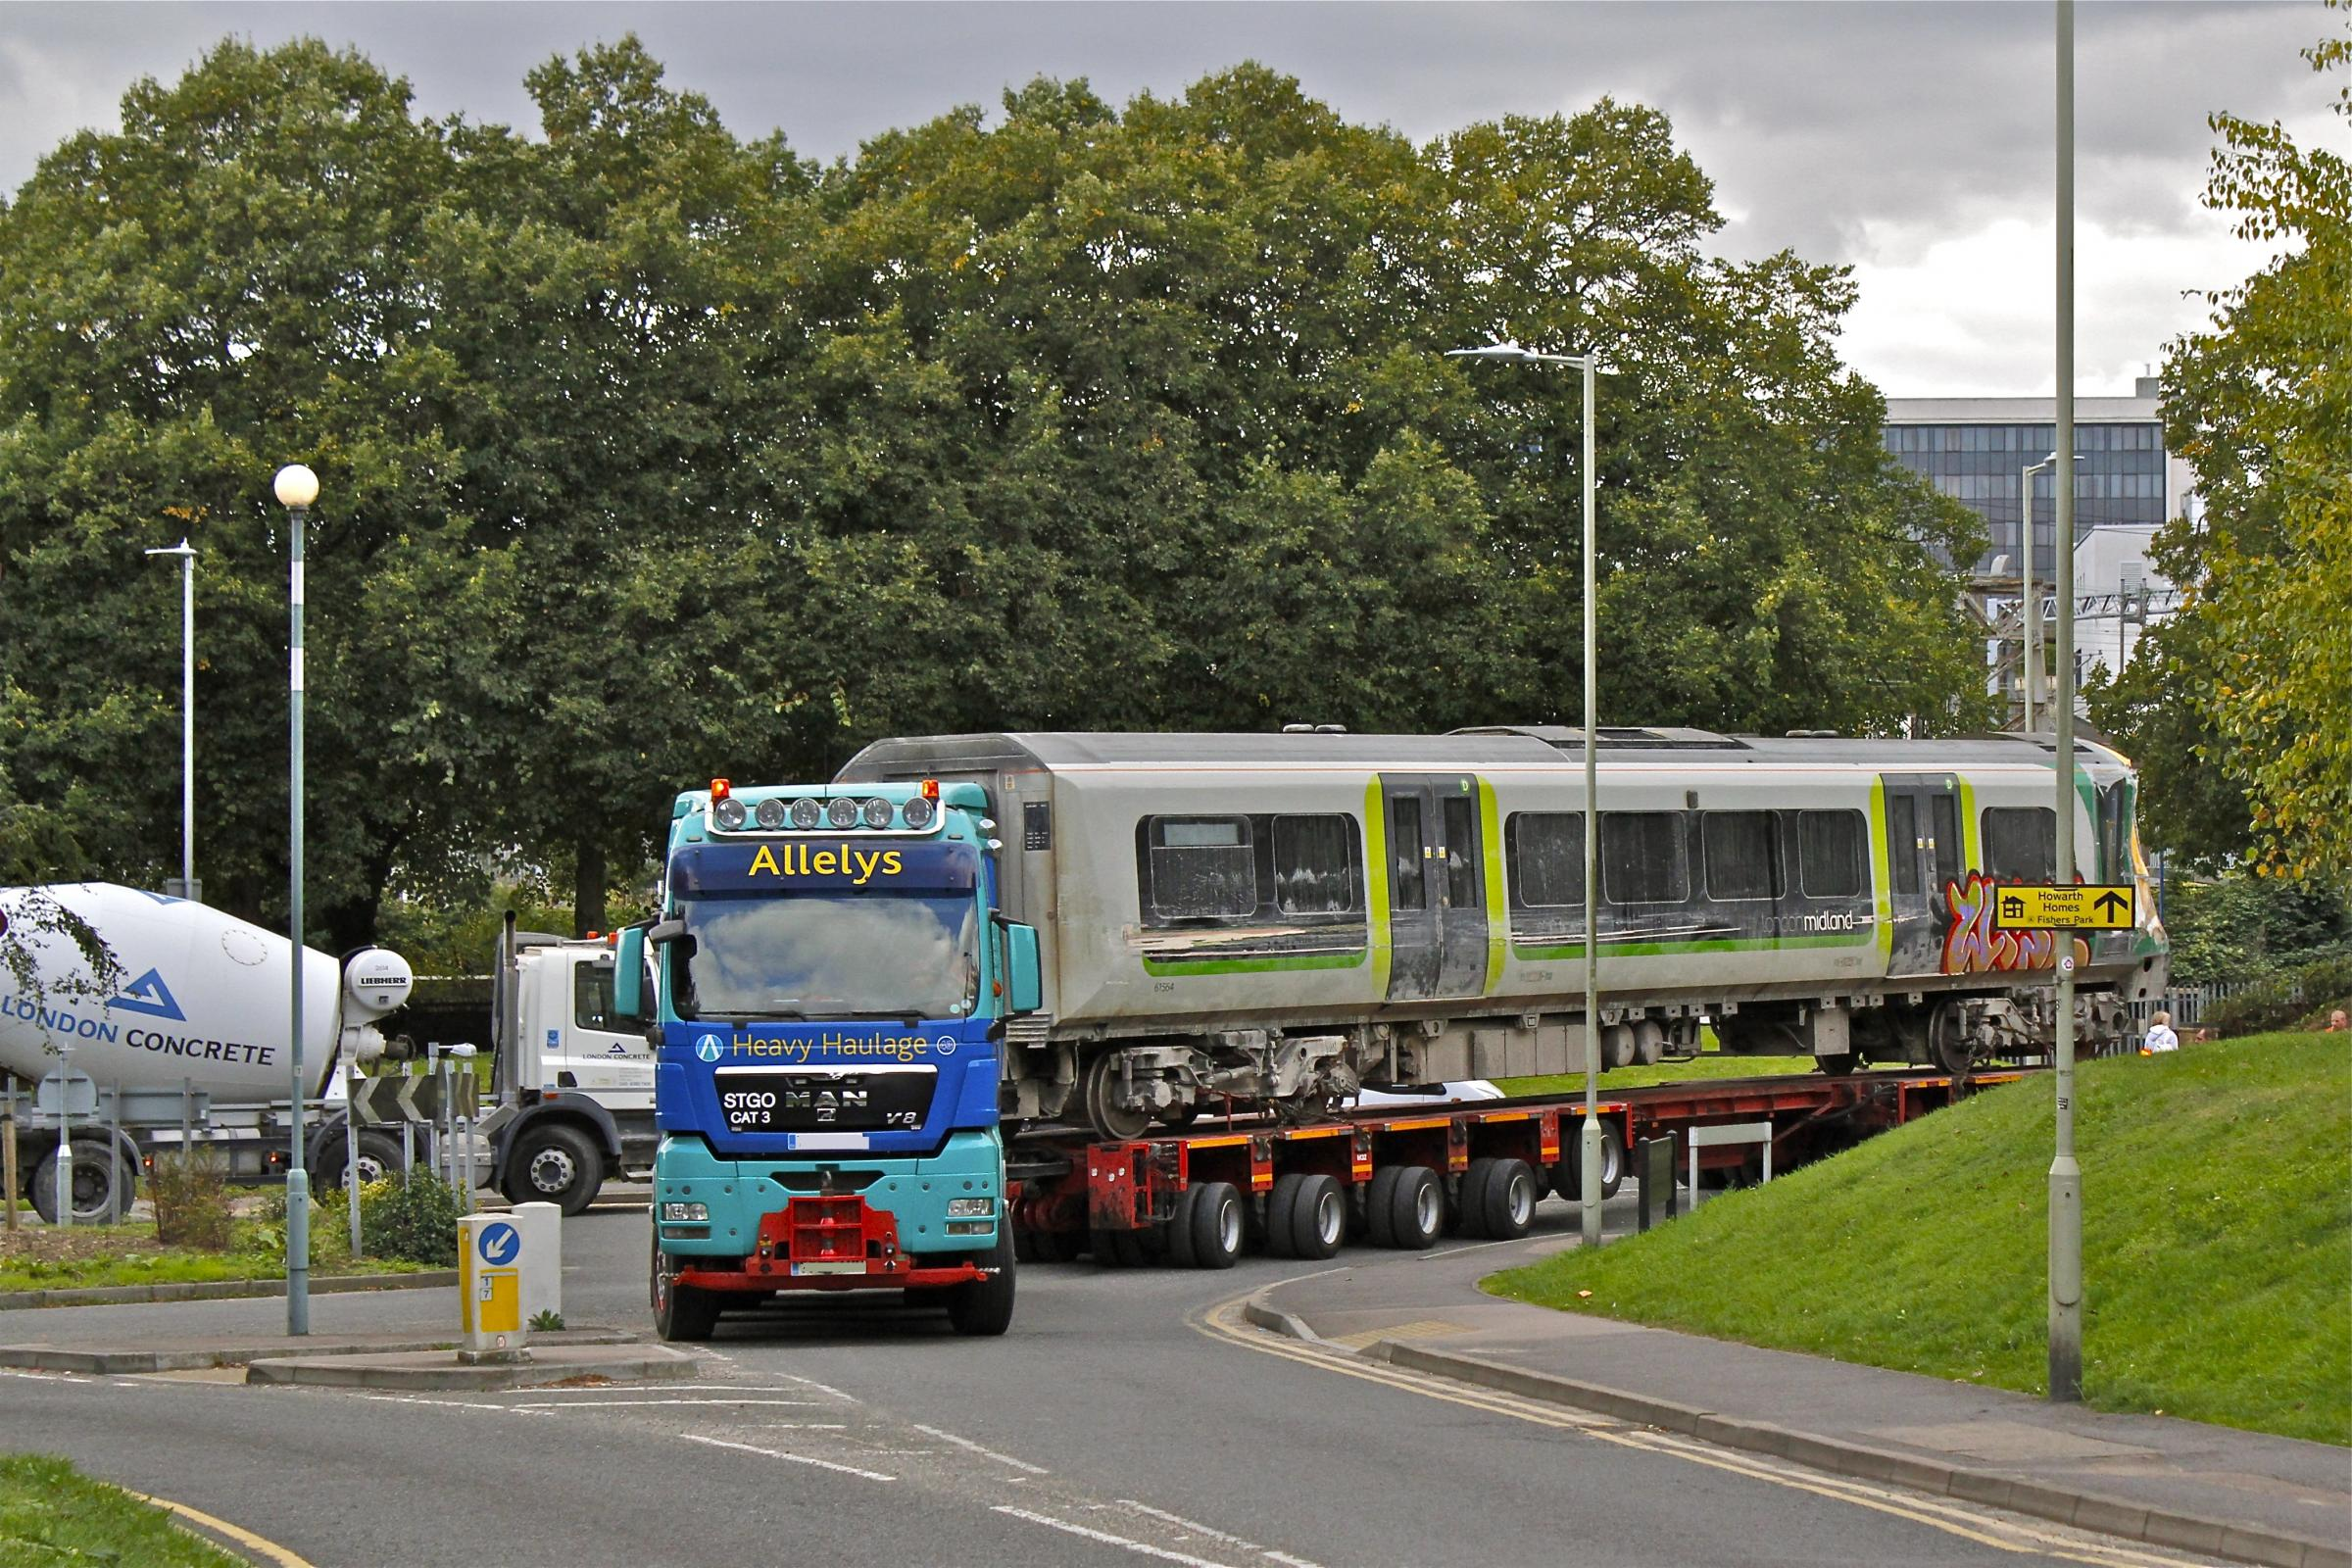 A carriage on its way back to Germany (credit: Christopher George)